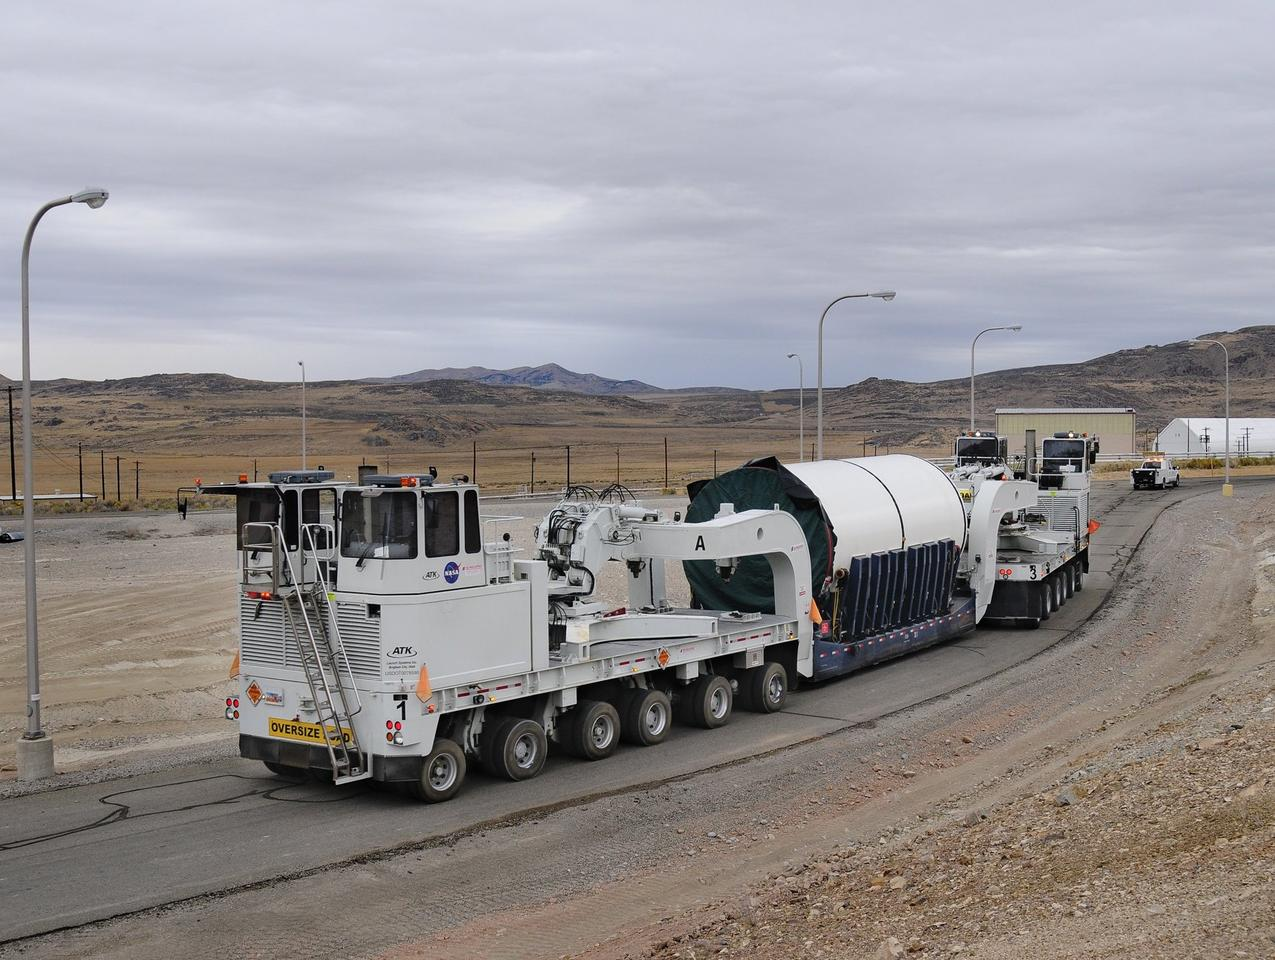 SLS solid rocket booster segment being moved (Image: ATK)